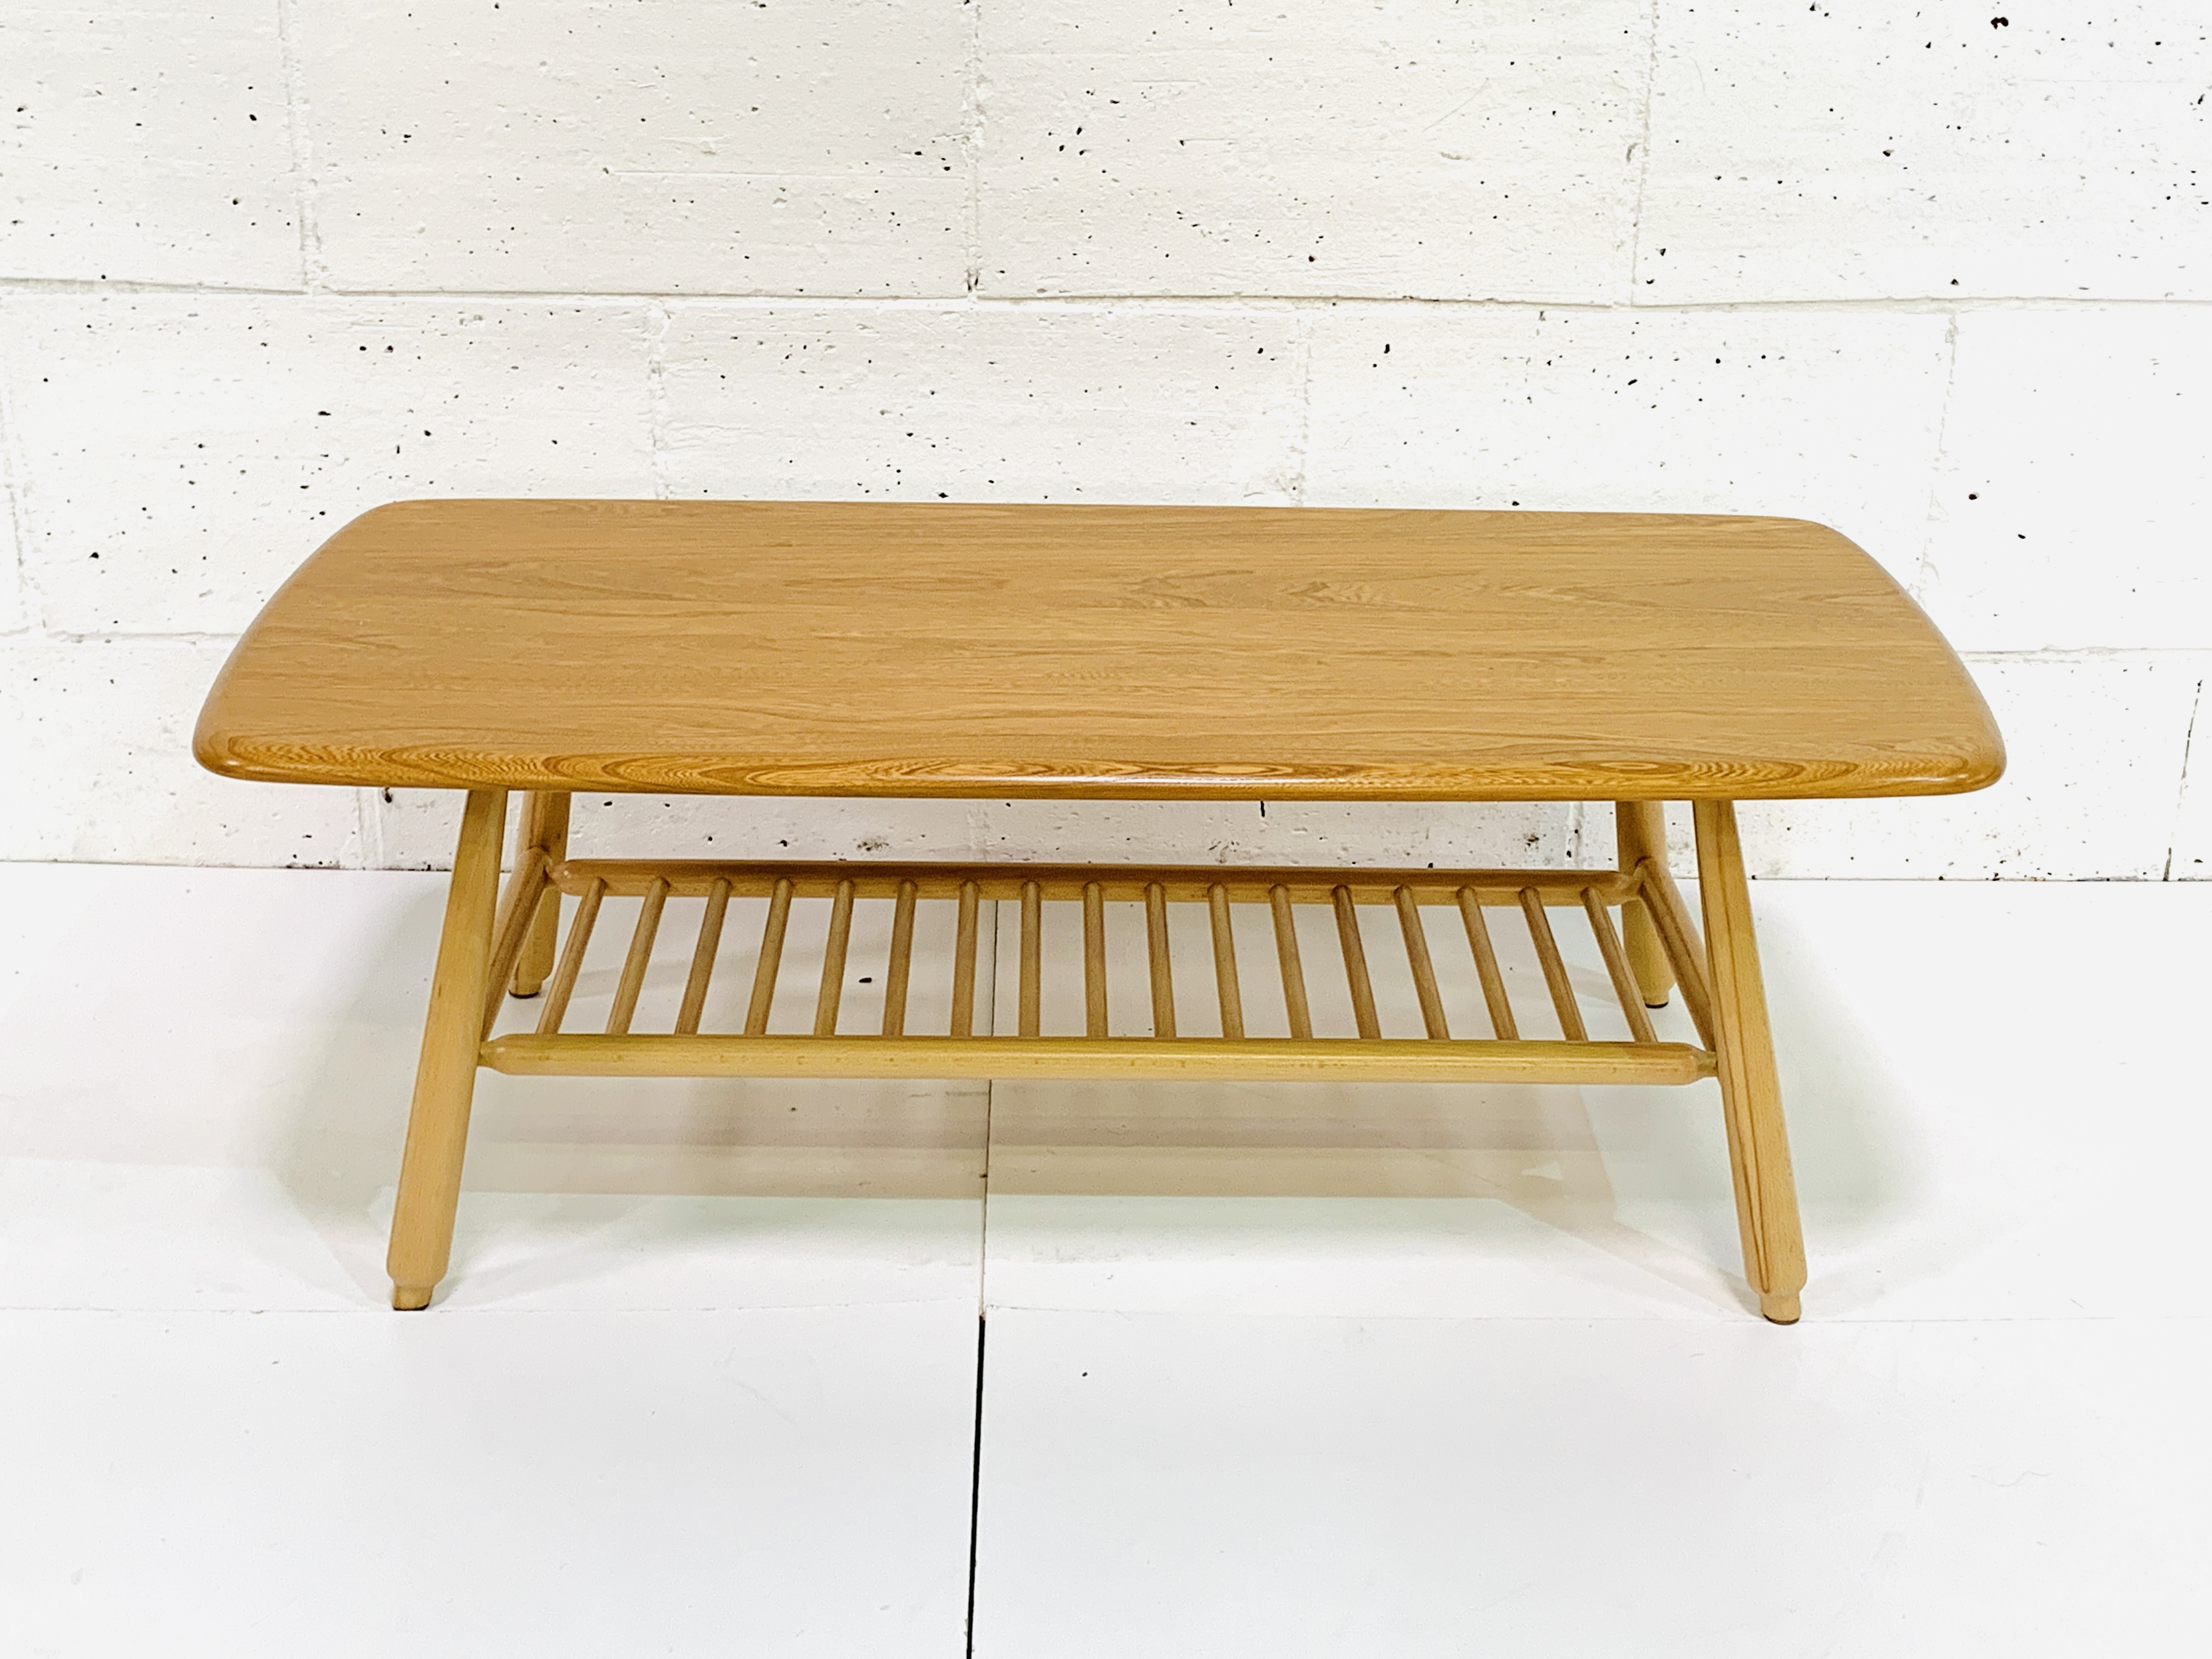 Ercol coffee table - Image 4 of 4